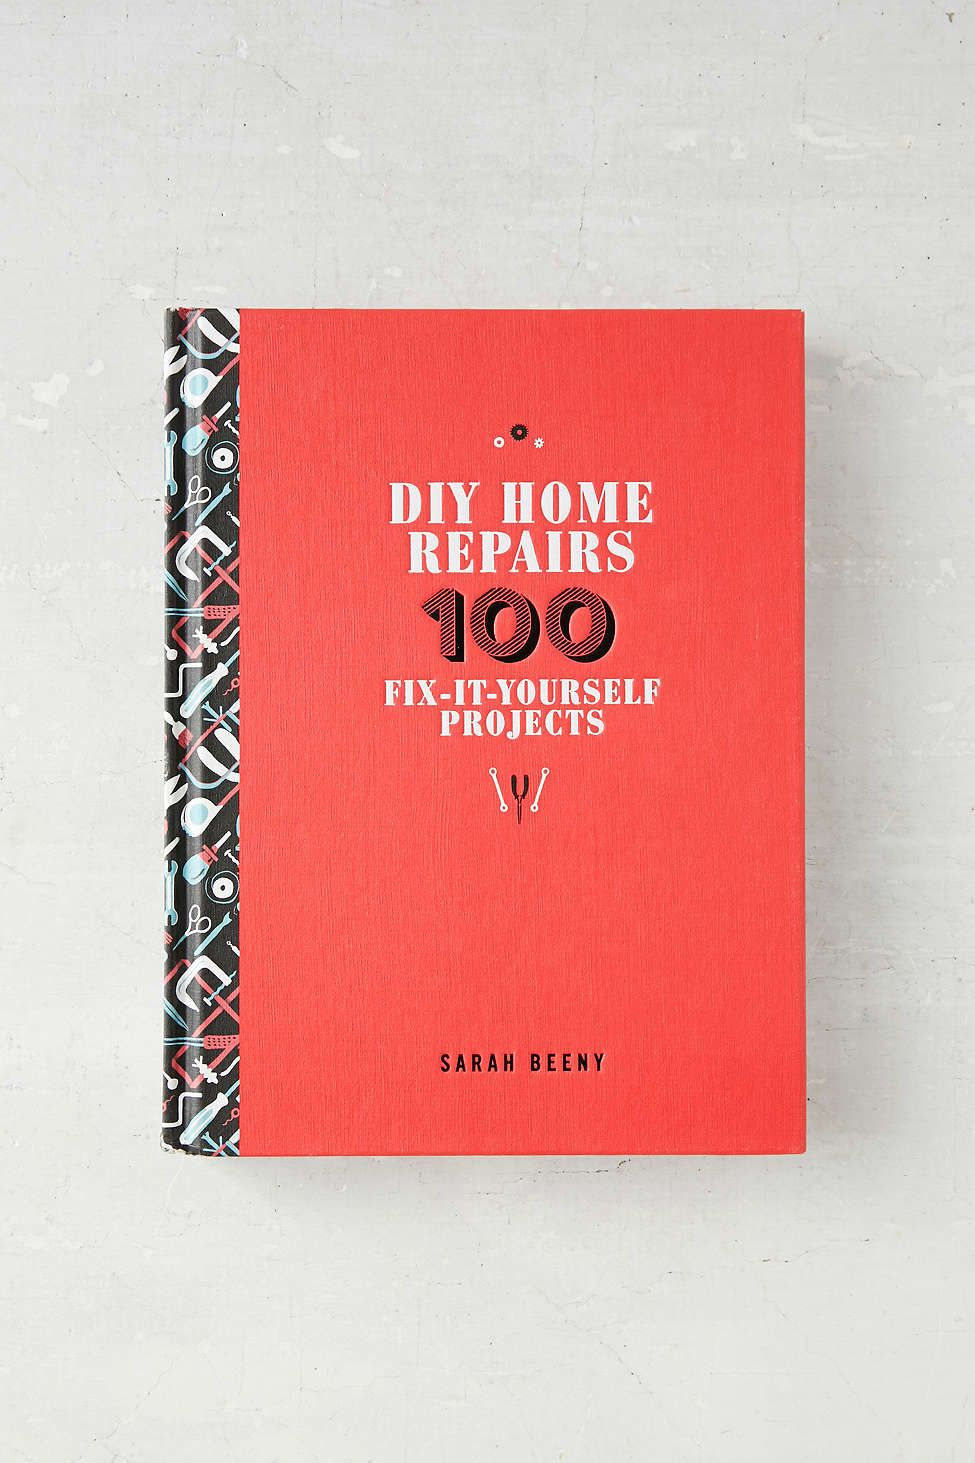 Diy home repairs 100 fix it yourself projects by sarah beeny diy home repairs 100 fix it yourself projects by sarah beeny solutioingenieria Image collections